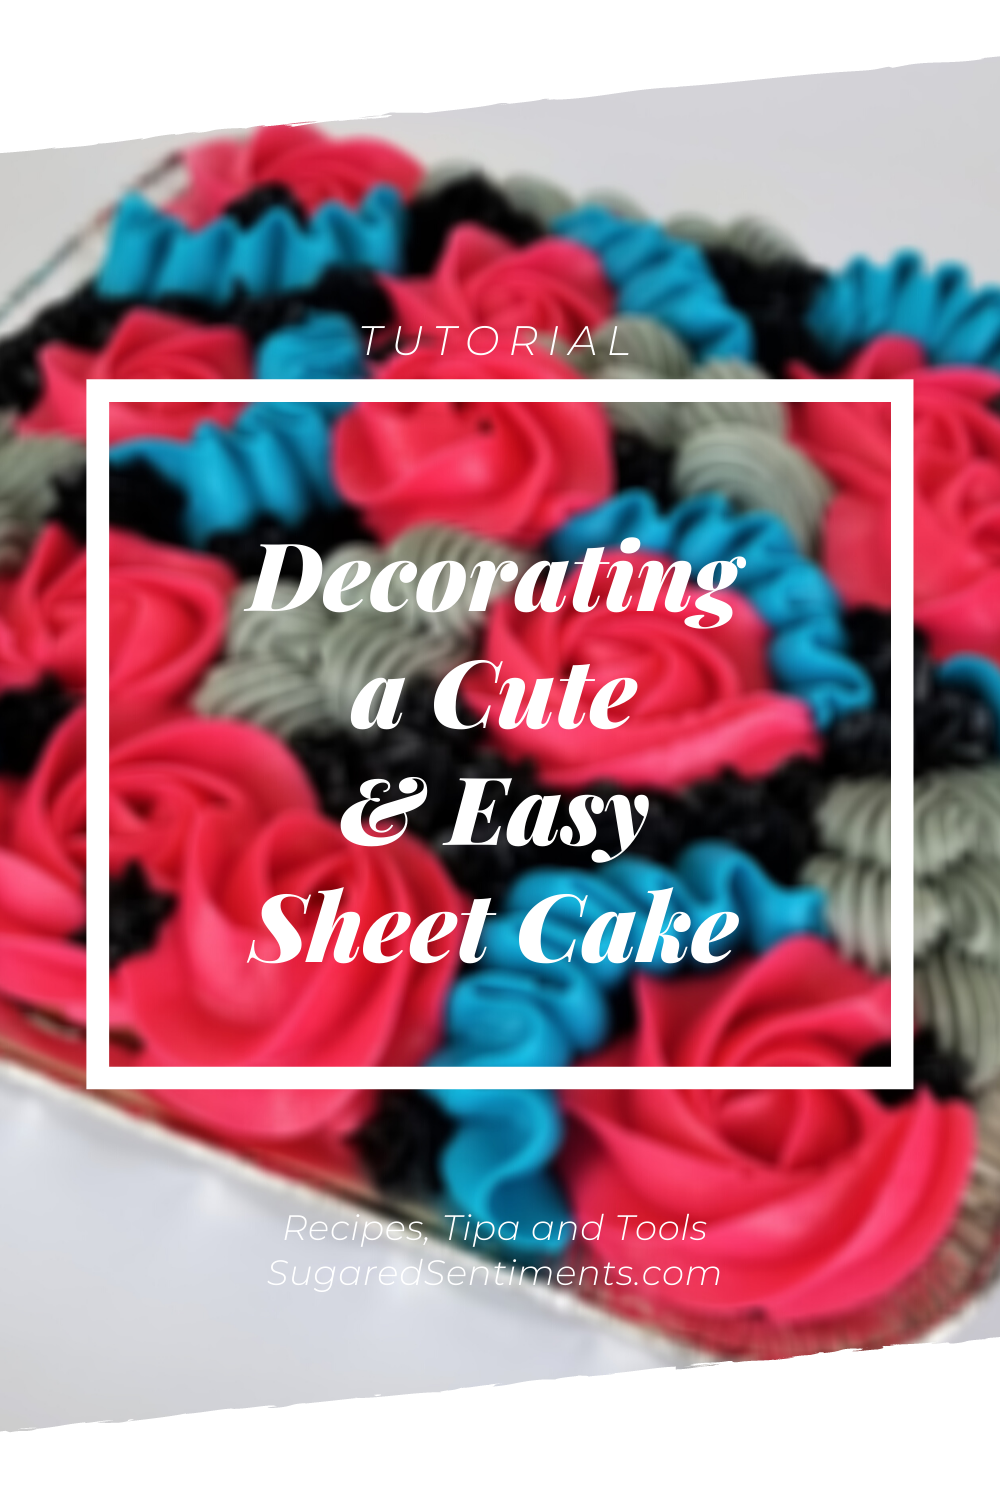 Tutorial for Decorating a Cute and Easy Sheet cake, perfect to gift to a friend or neighbor.